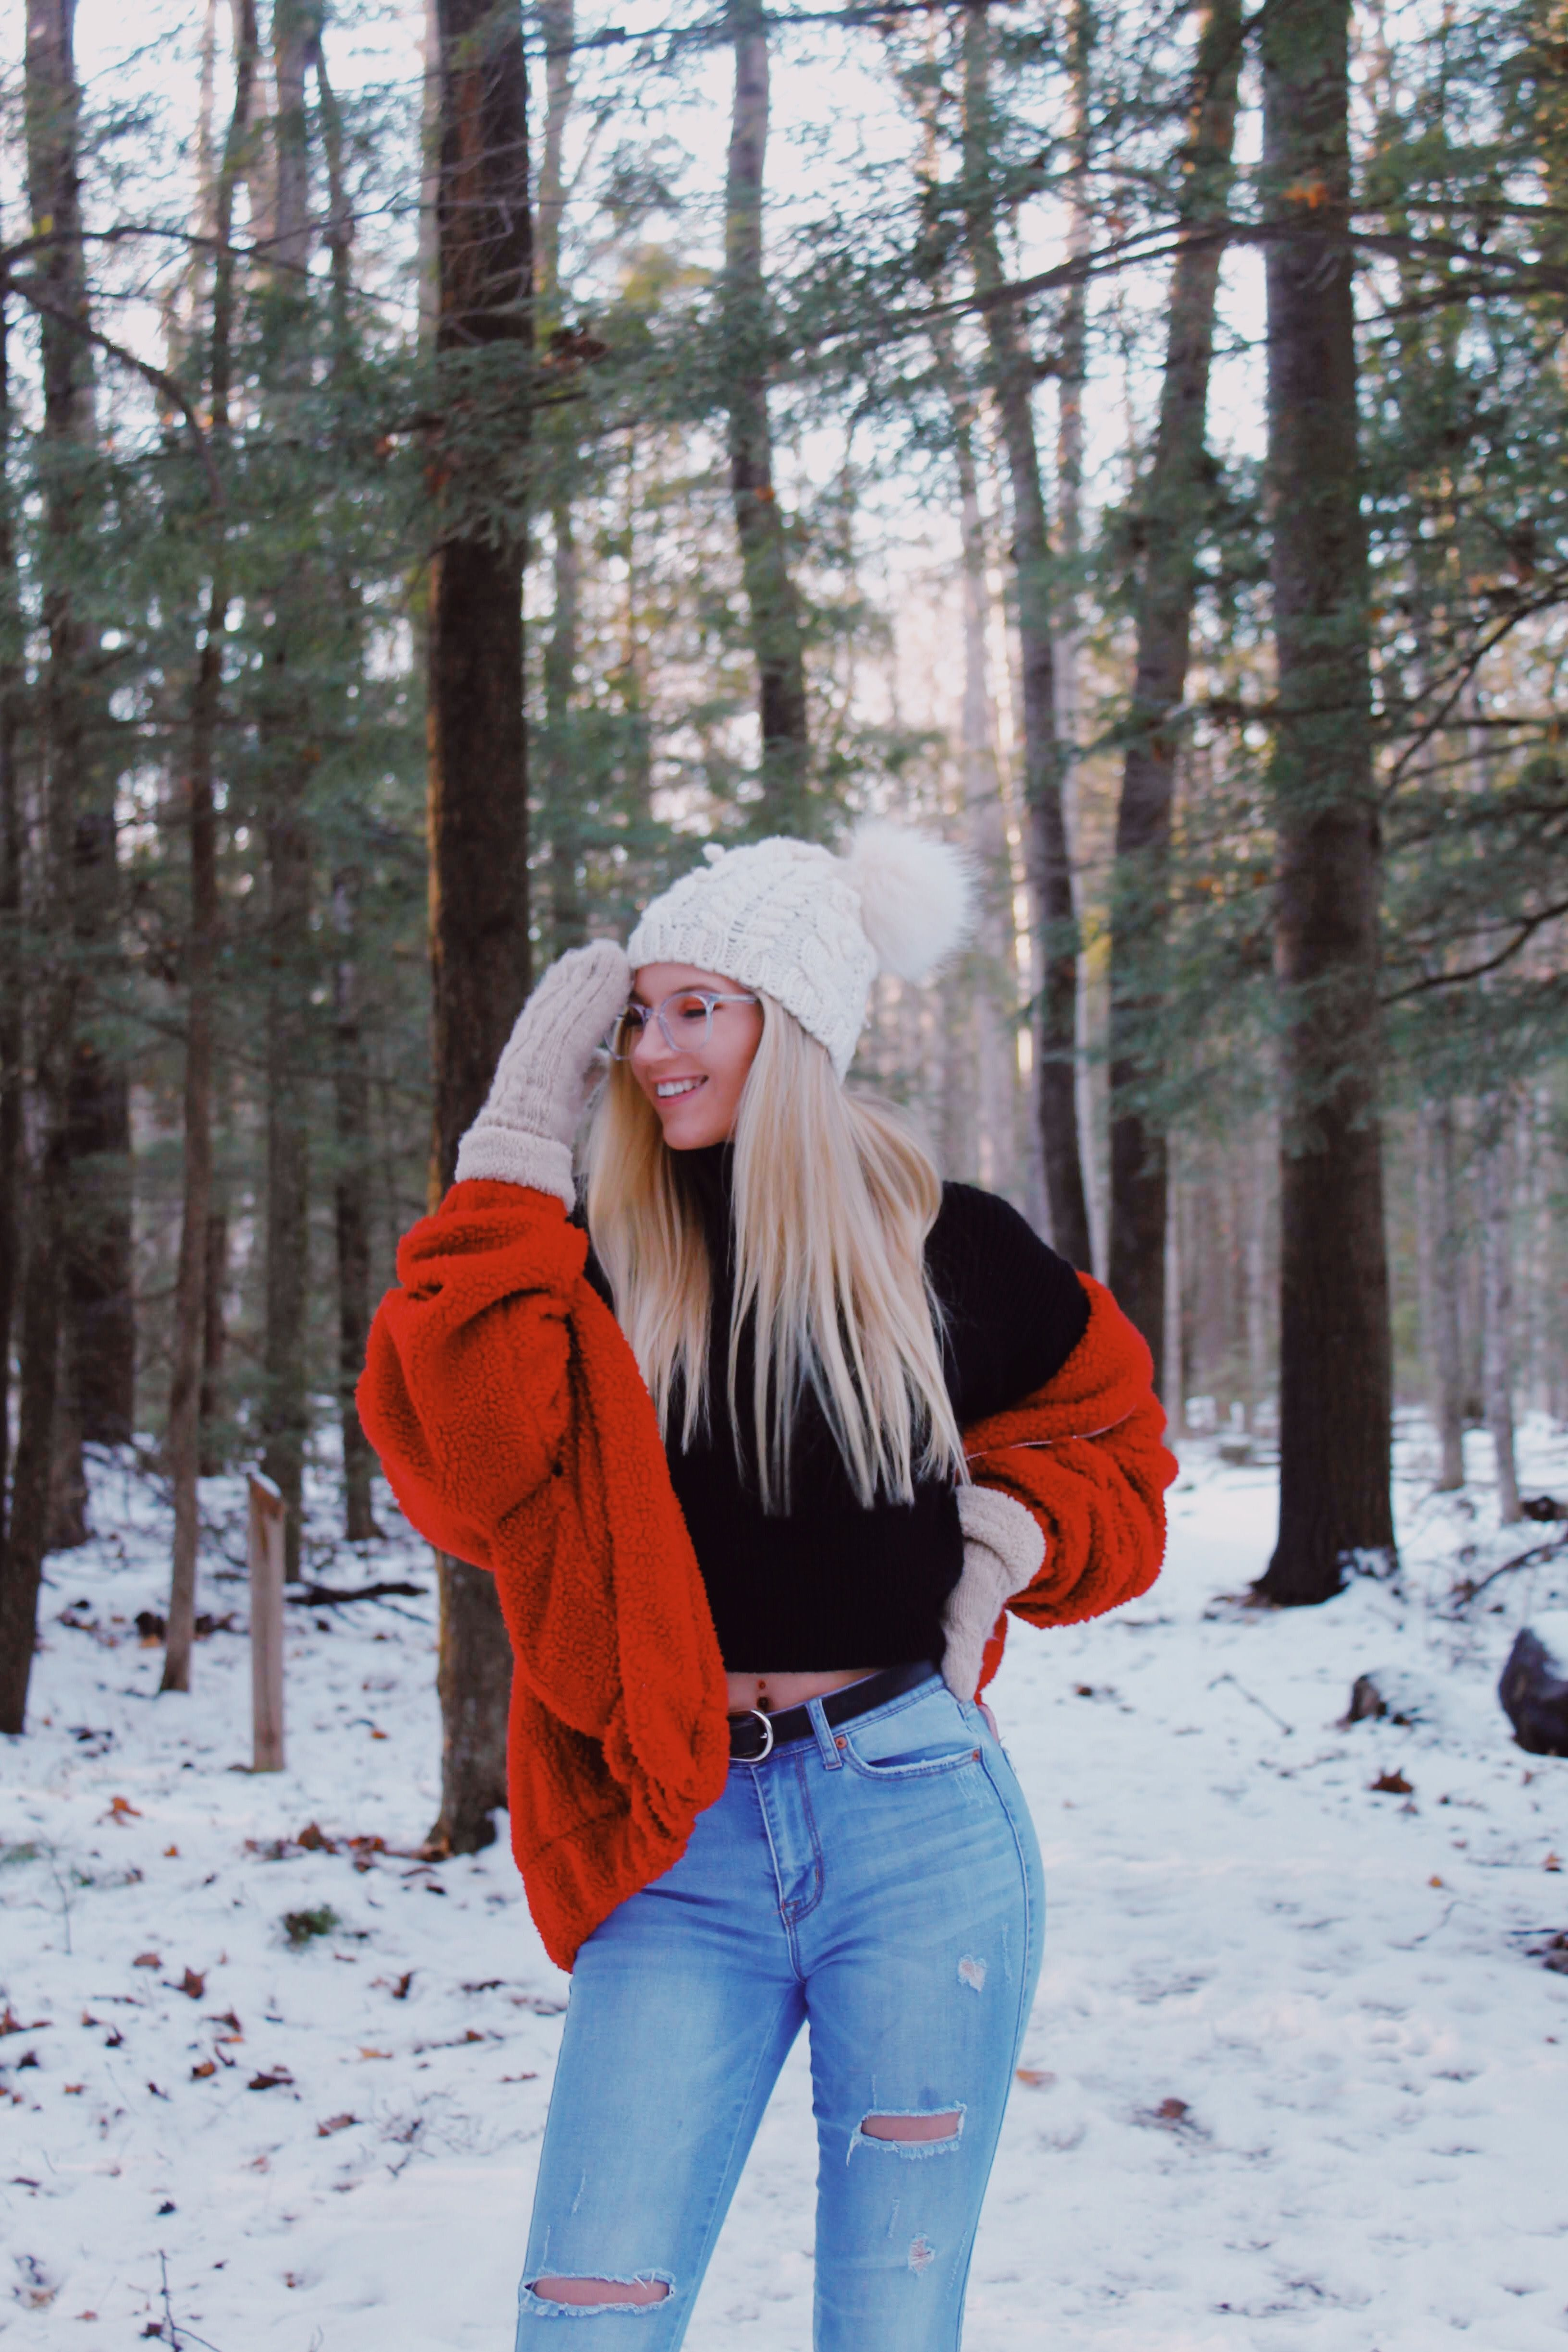 Winter Photo Shoot Ideas For Instagram To Post Winter Photos Photoshoot Poses Photoshoot